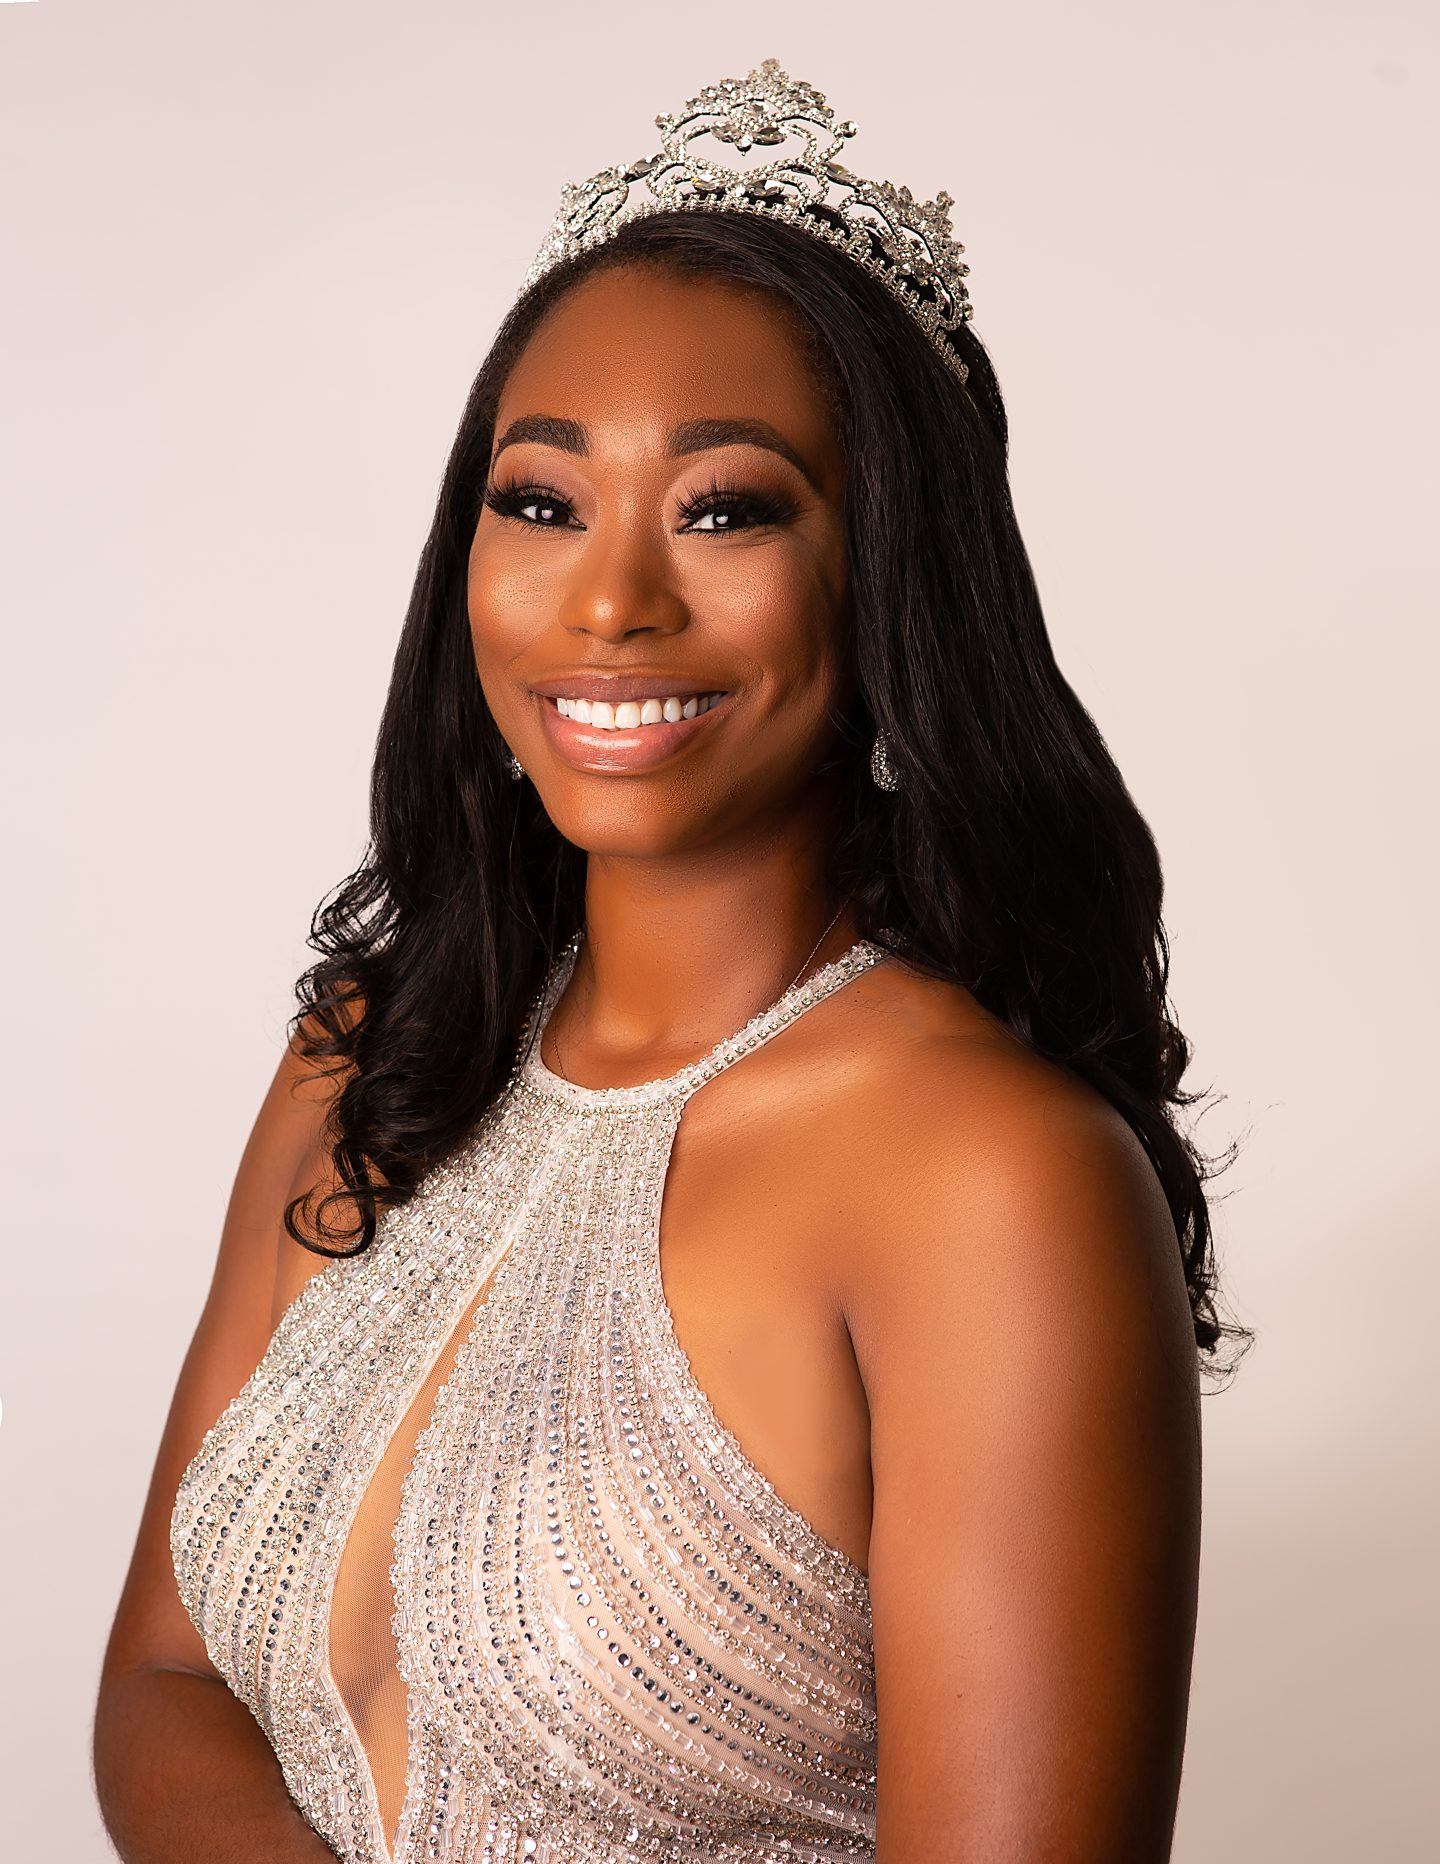 Mrs New Jersey America - Chimere Haskins